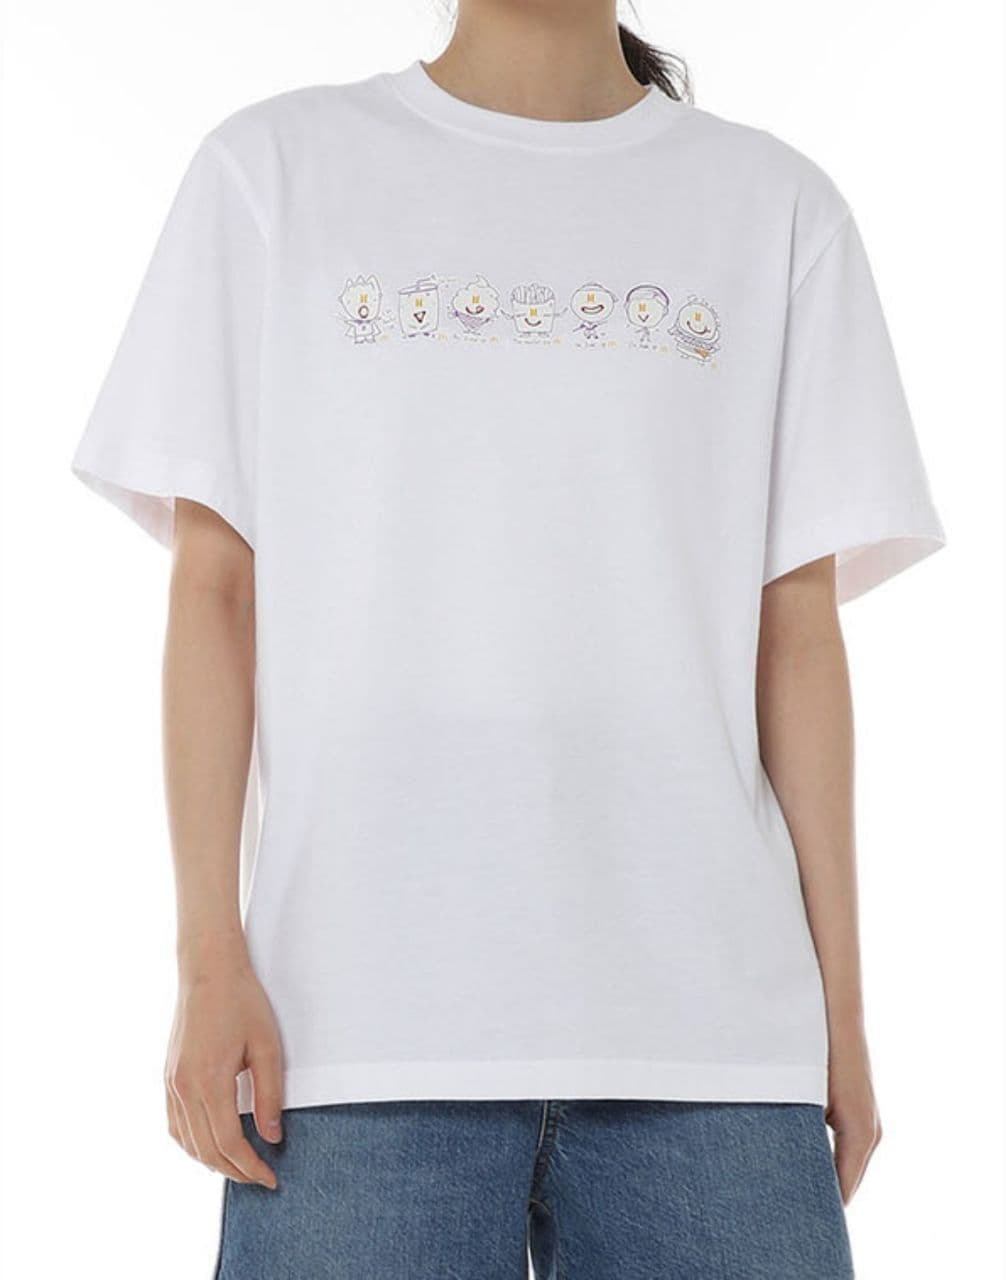 bts mcdonald collection - saucy s/s t-shirt all characters